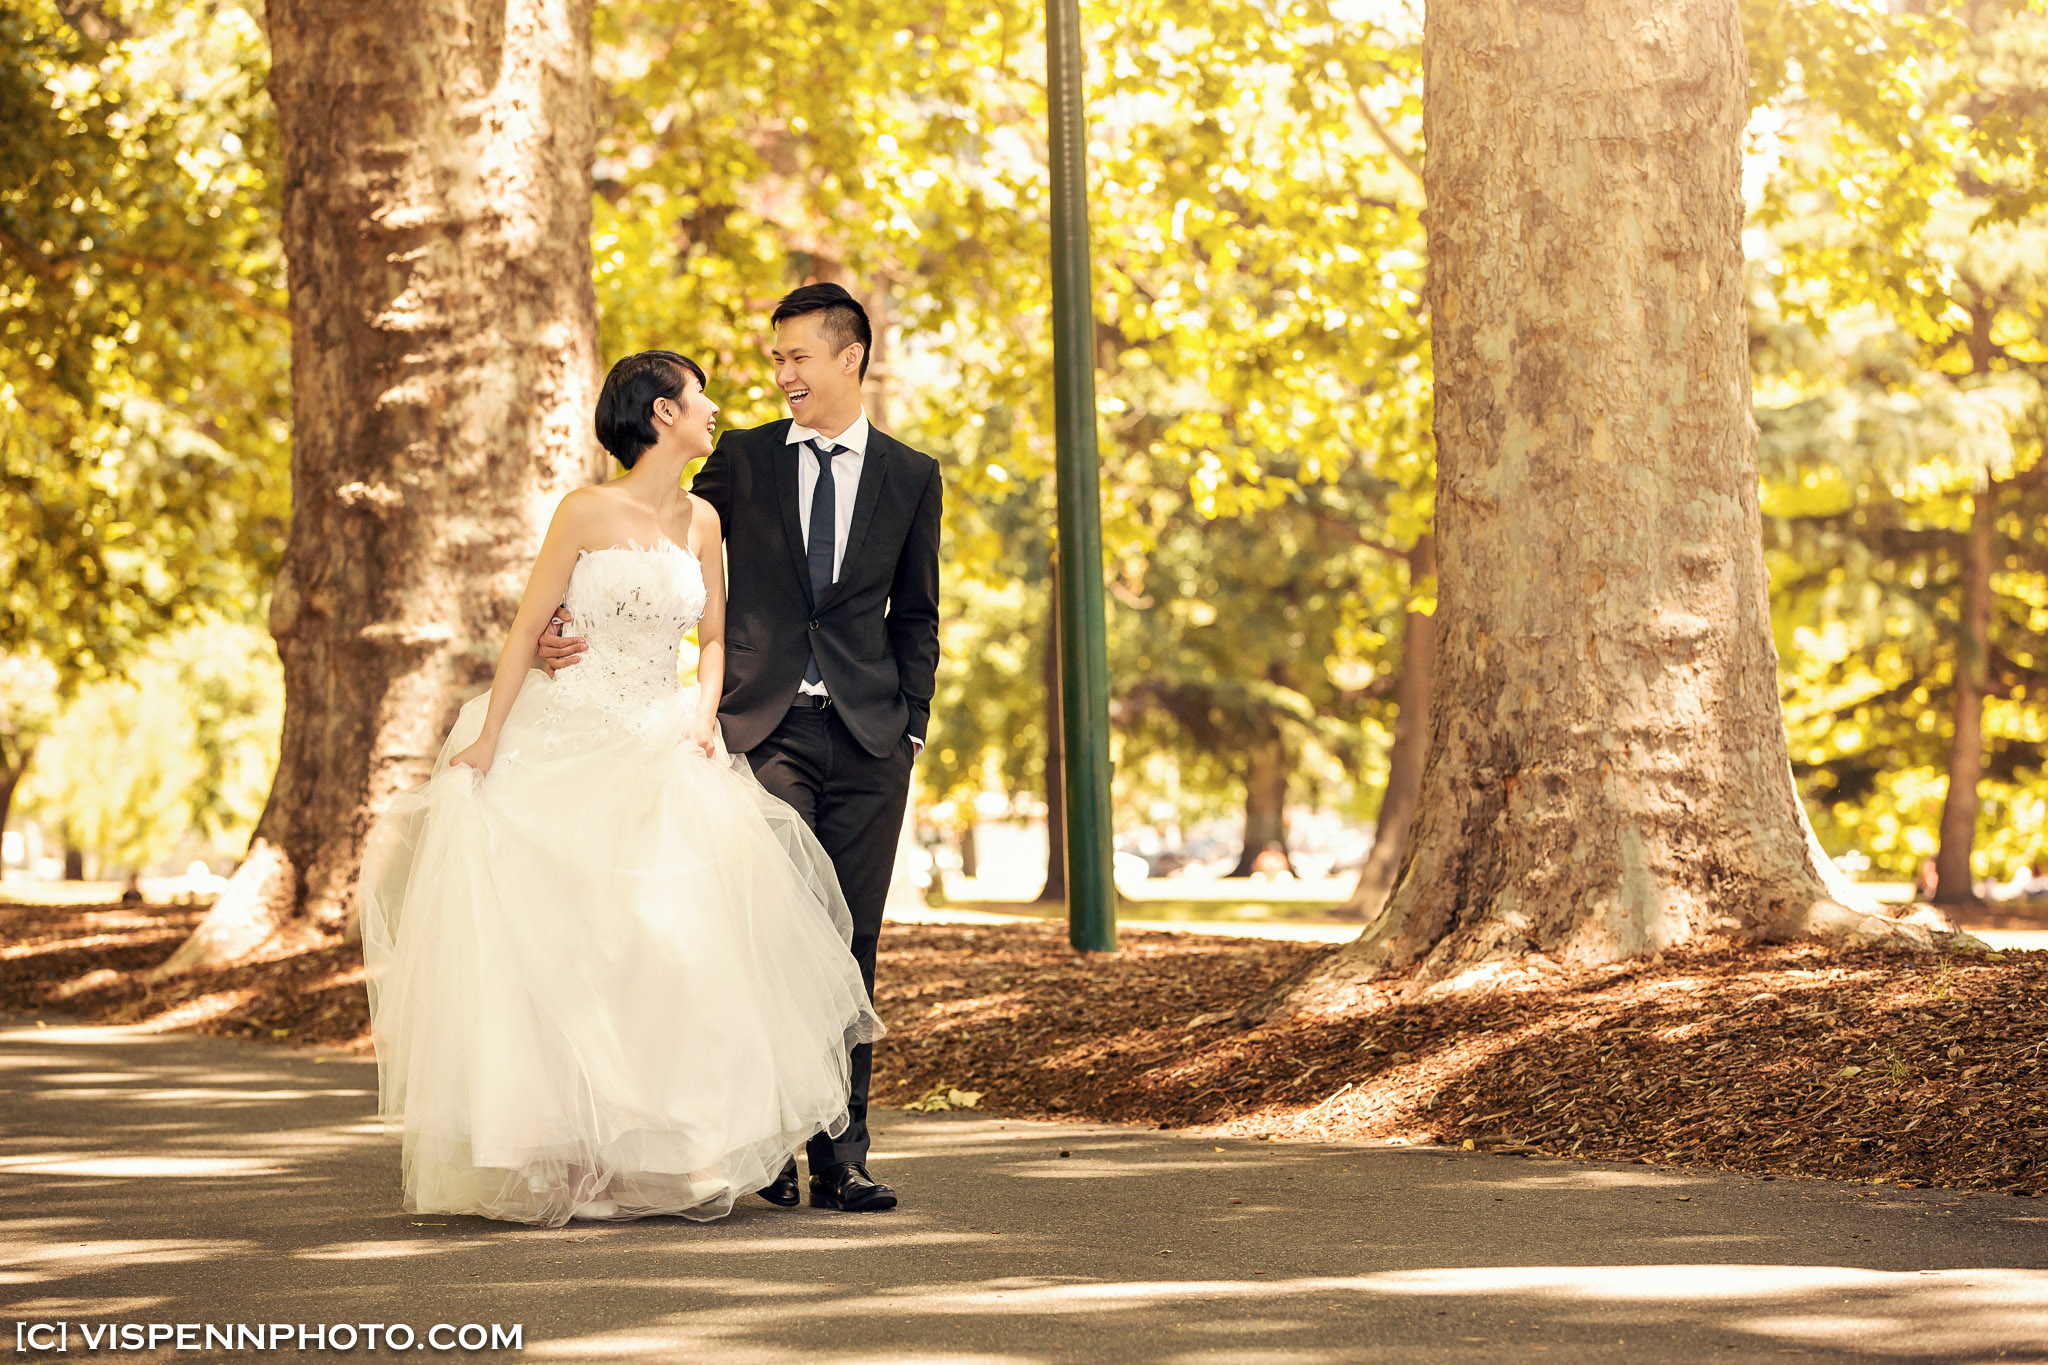 PRE WEDDING Photography Melbourne Ivy PreWedding 1423